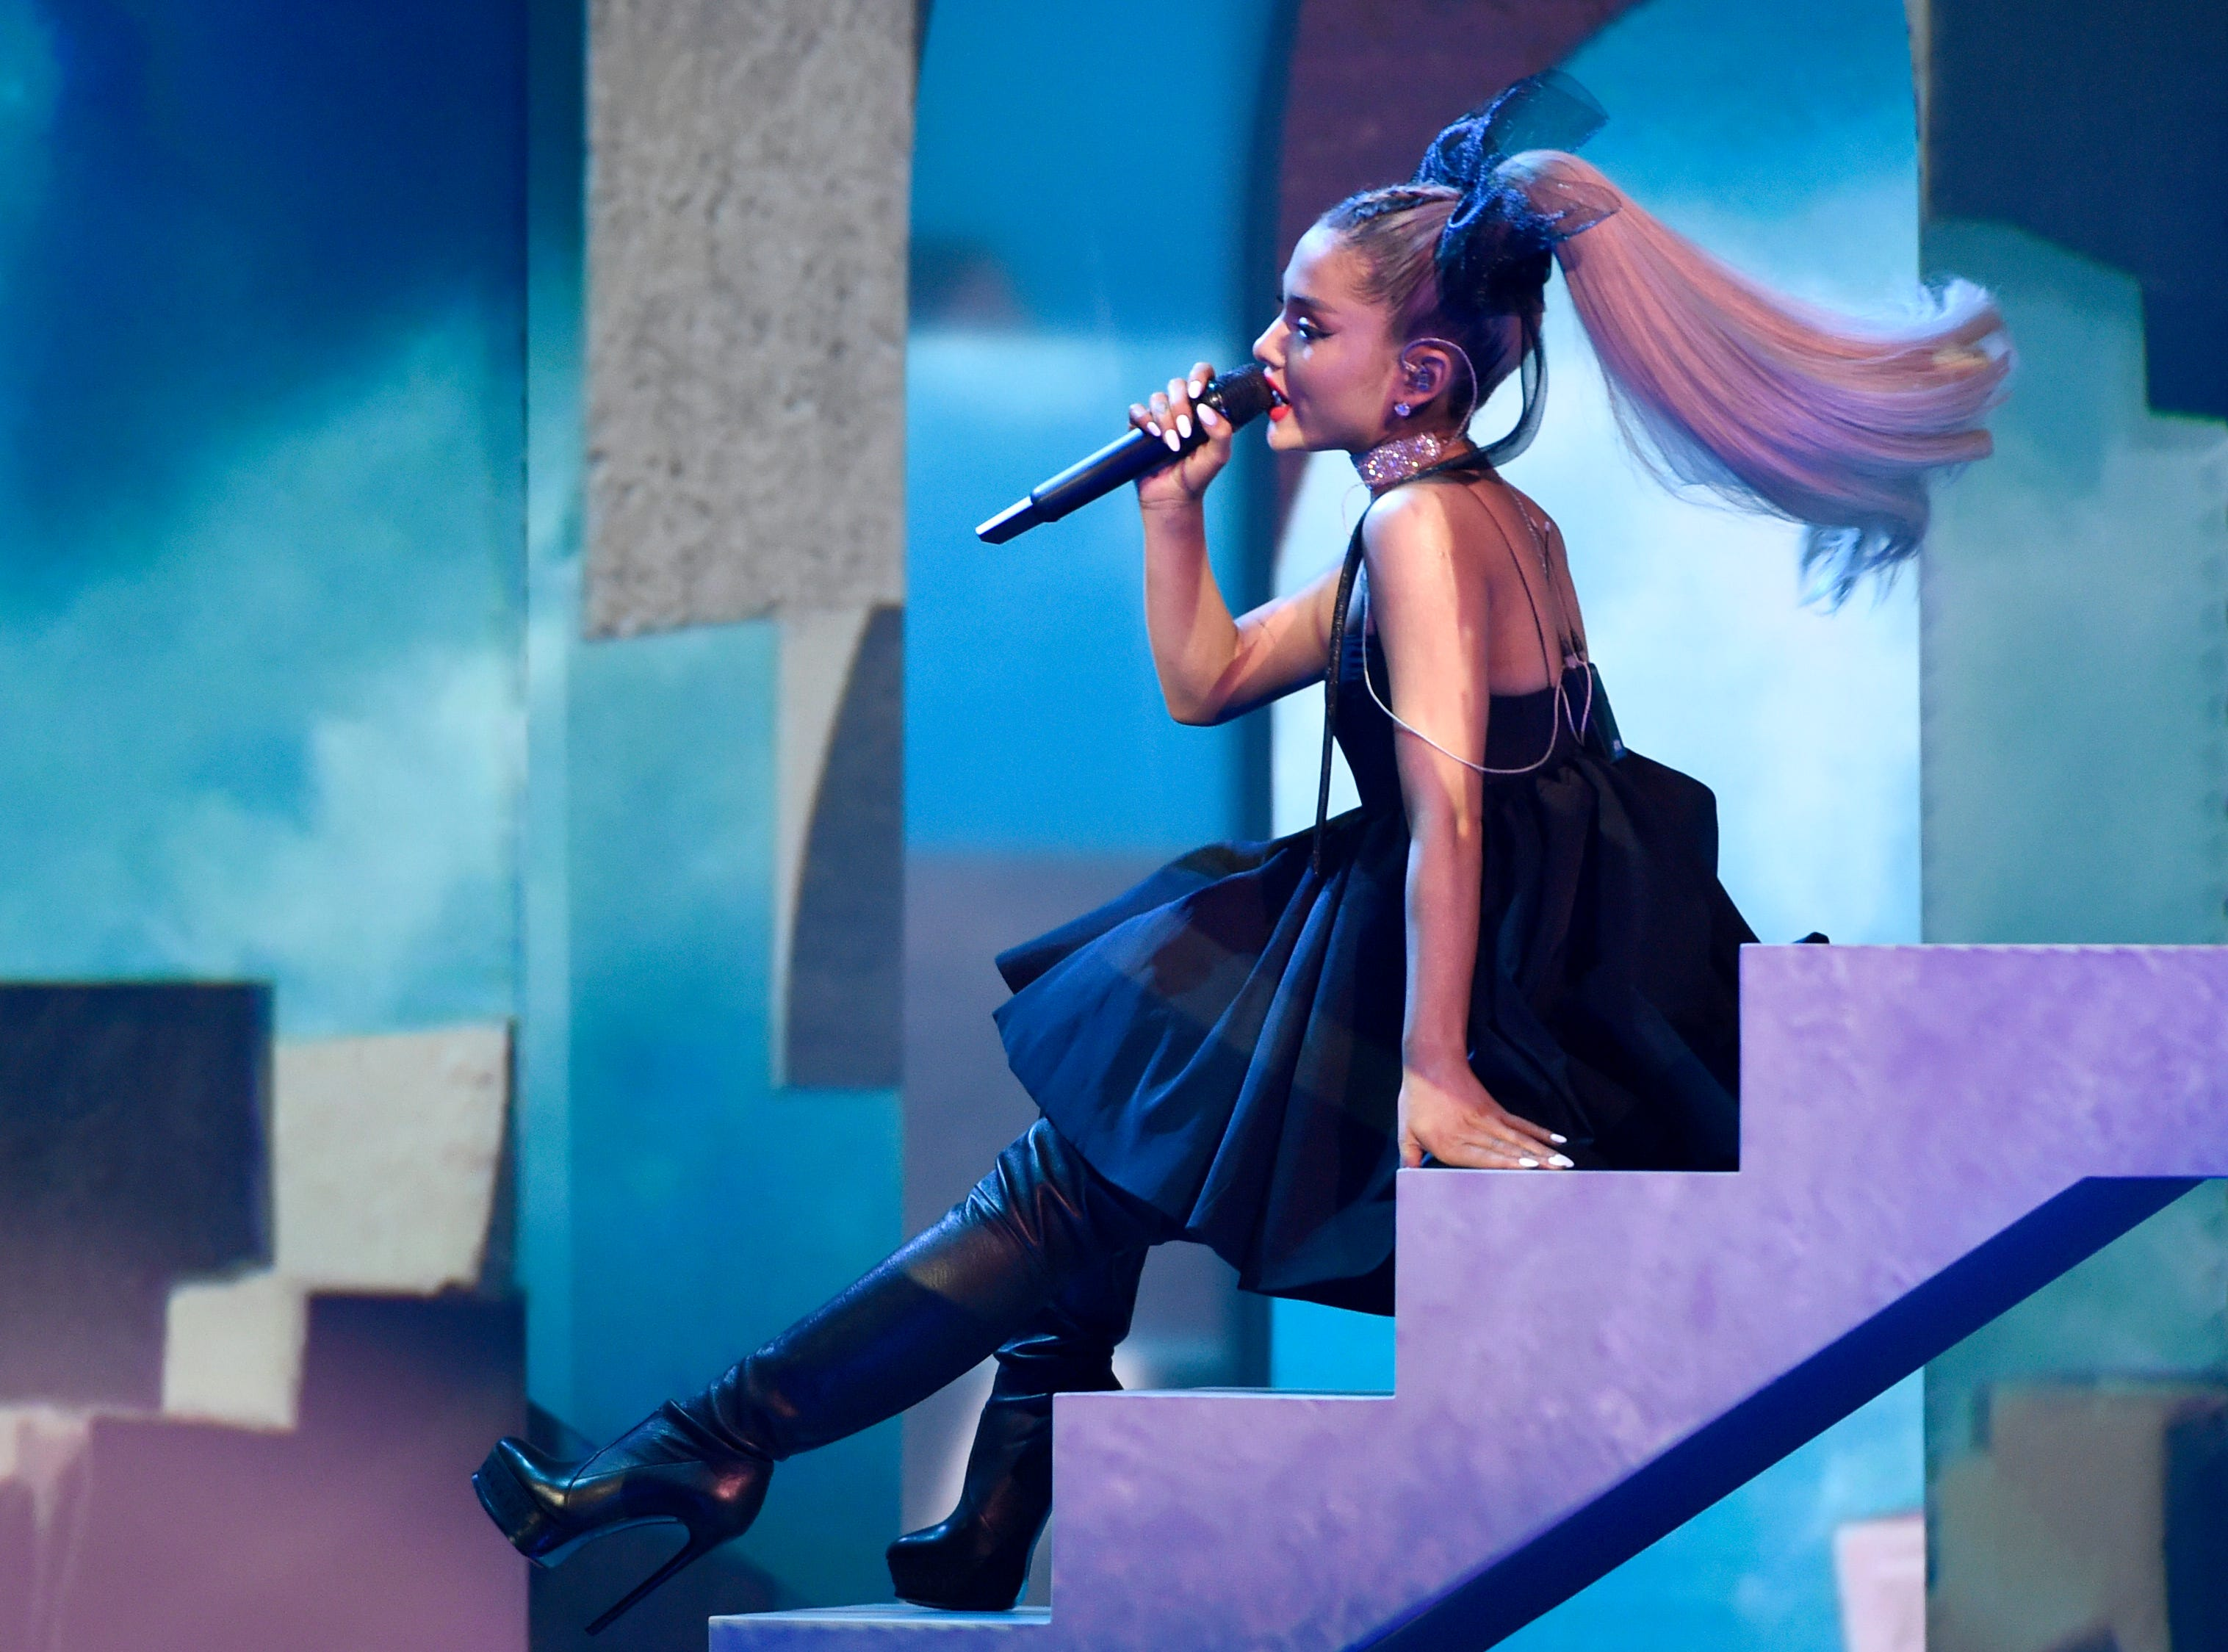 """May 20: Inside the Billboard Music Awards, Ariana Grande performs """"No Tears Left To Cry."""""""